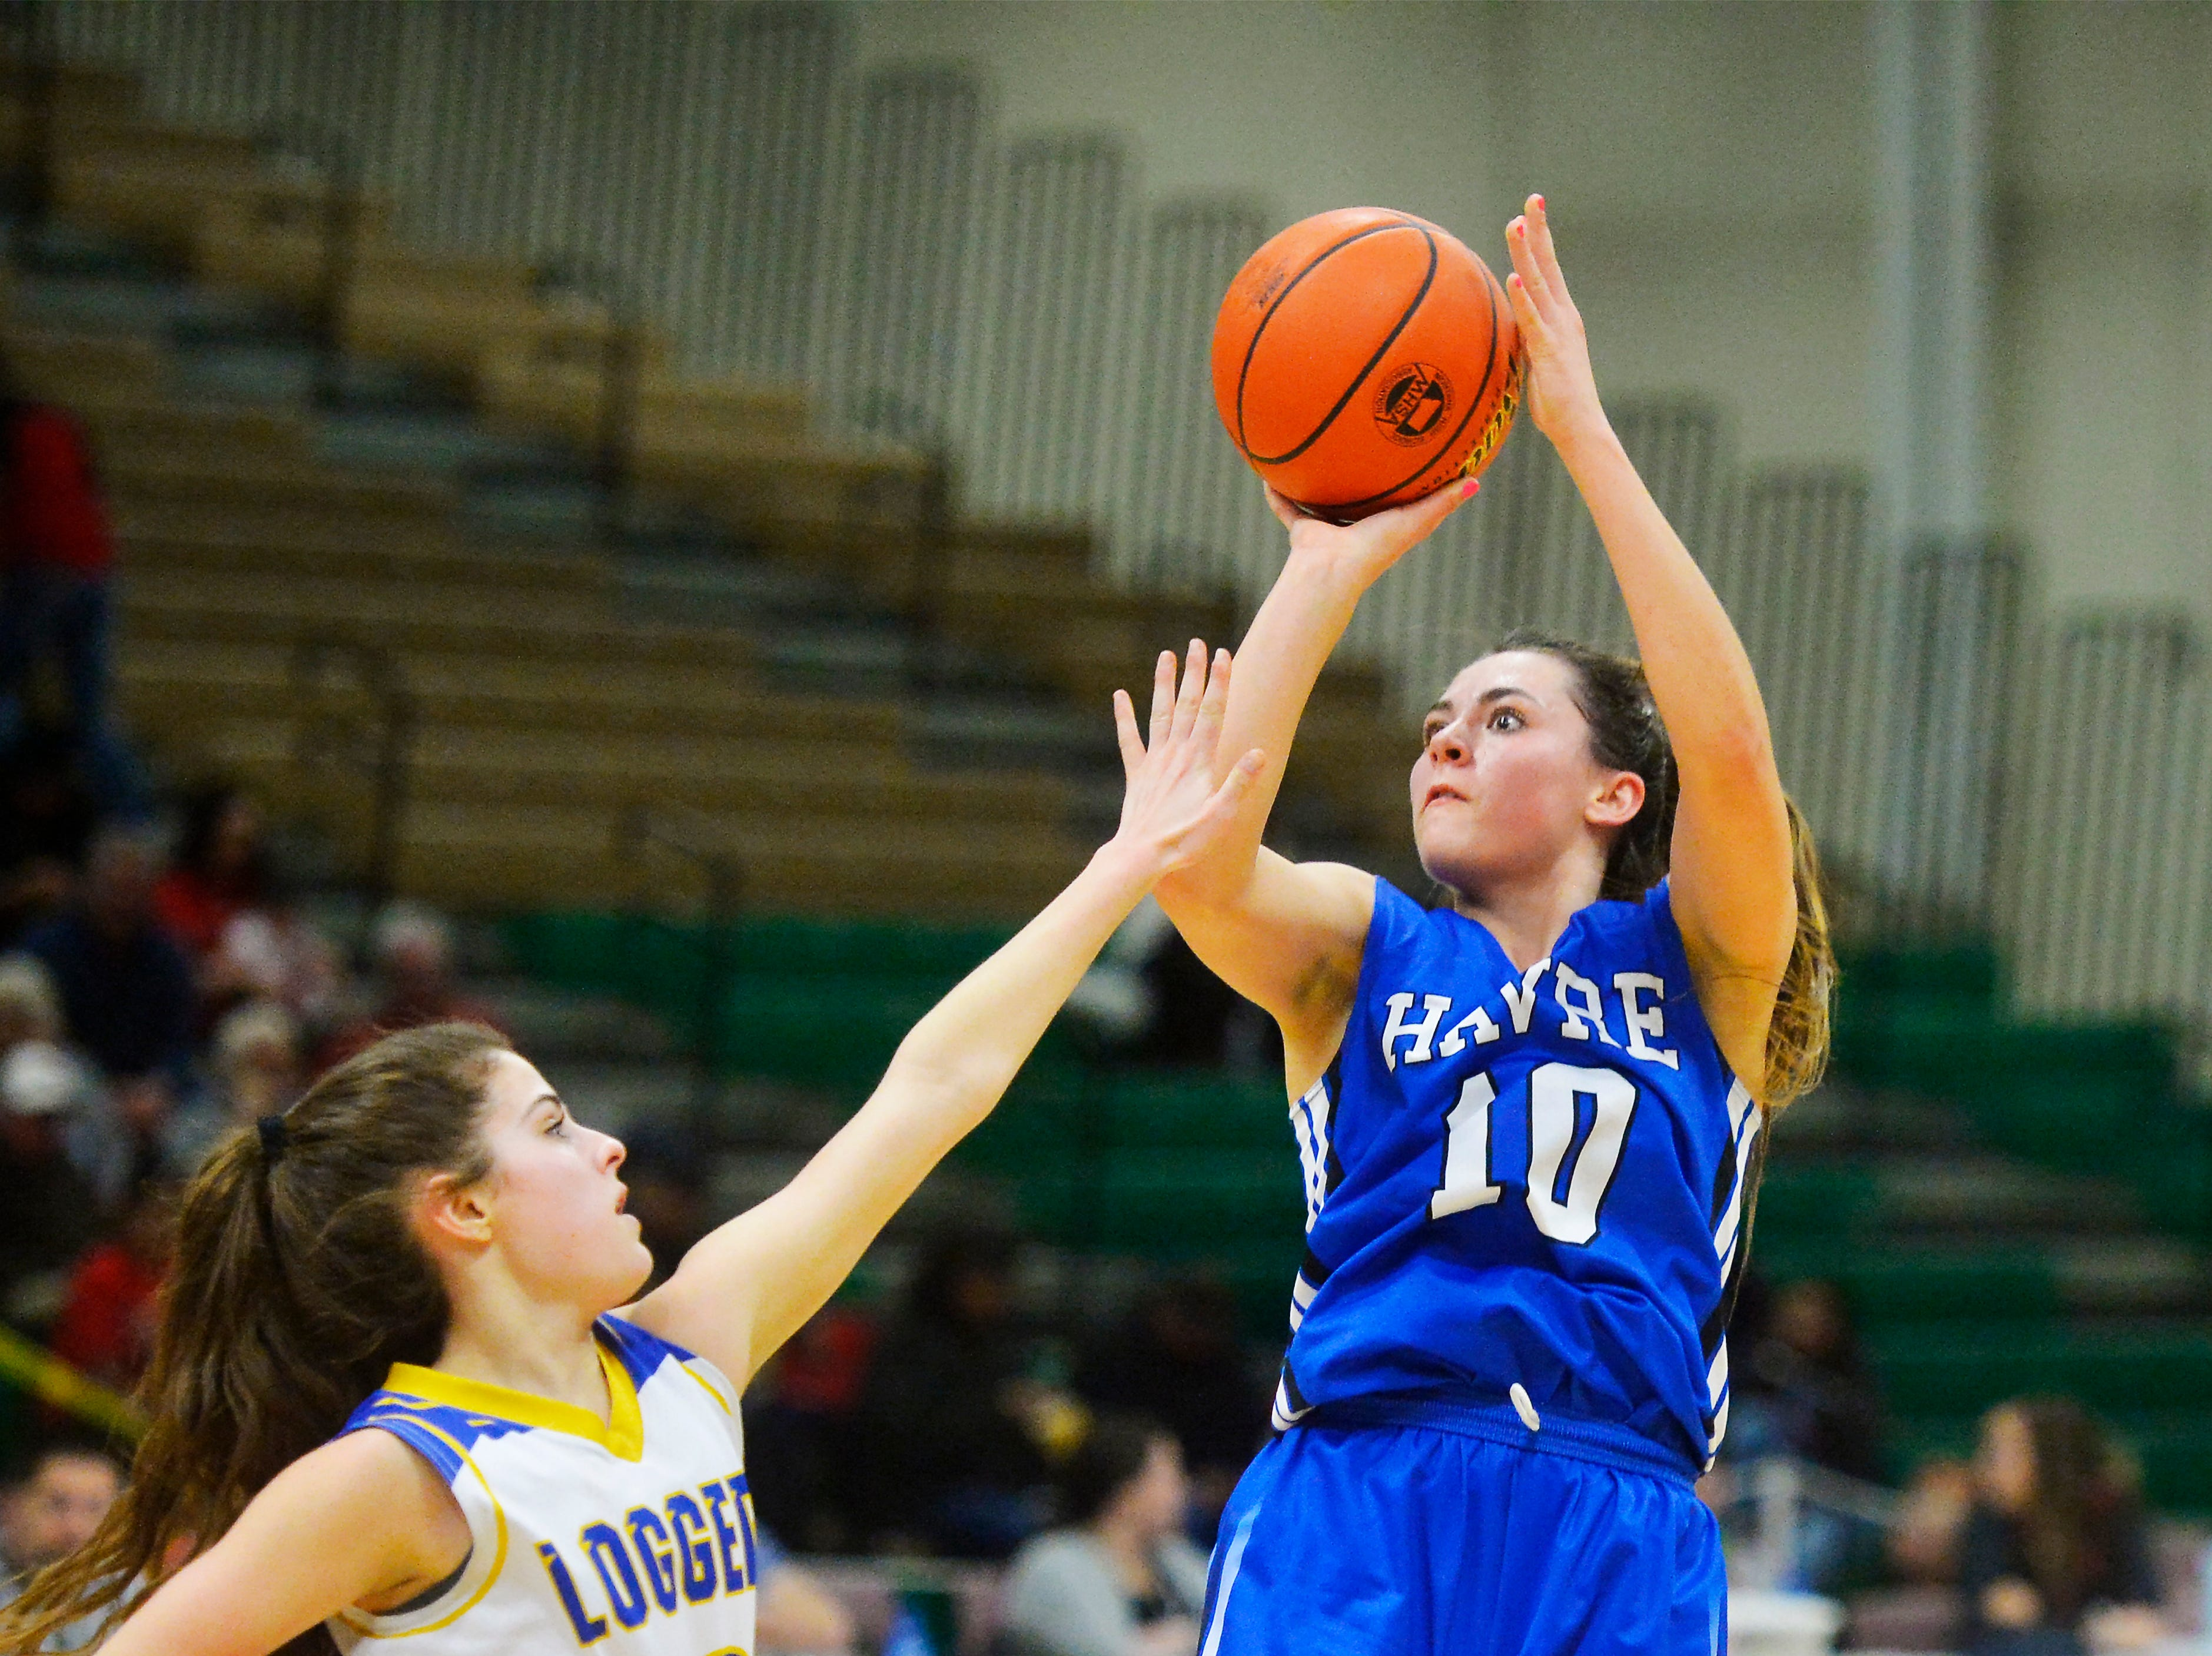 Havre's Kyndall Keller shoots over Libby's Allie Collins on Thursday during the Class A State Basketball Tournament in the Four Seasons Arena.